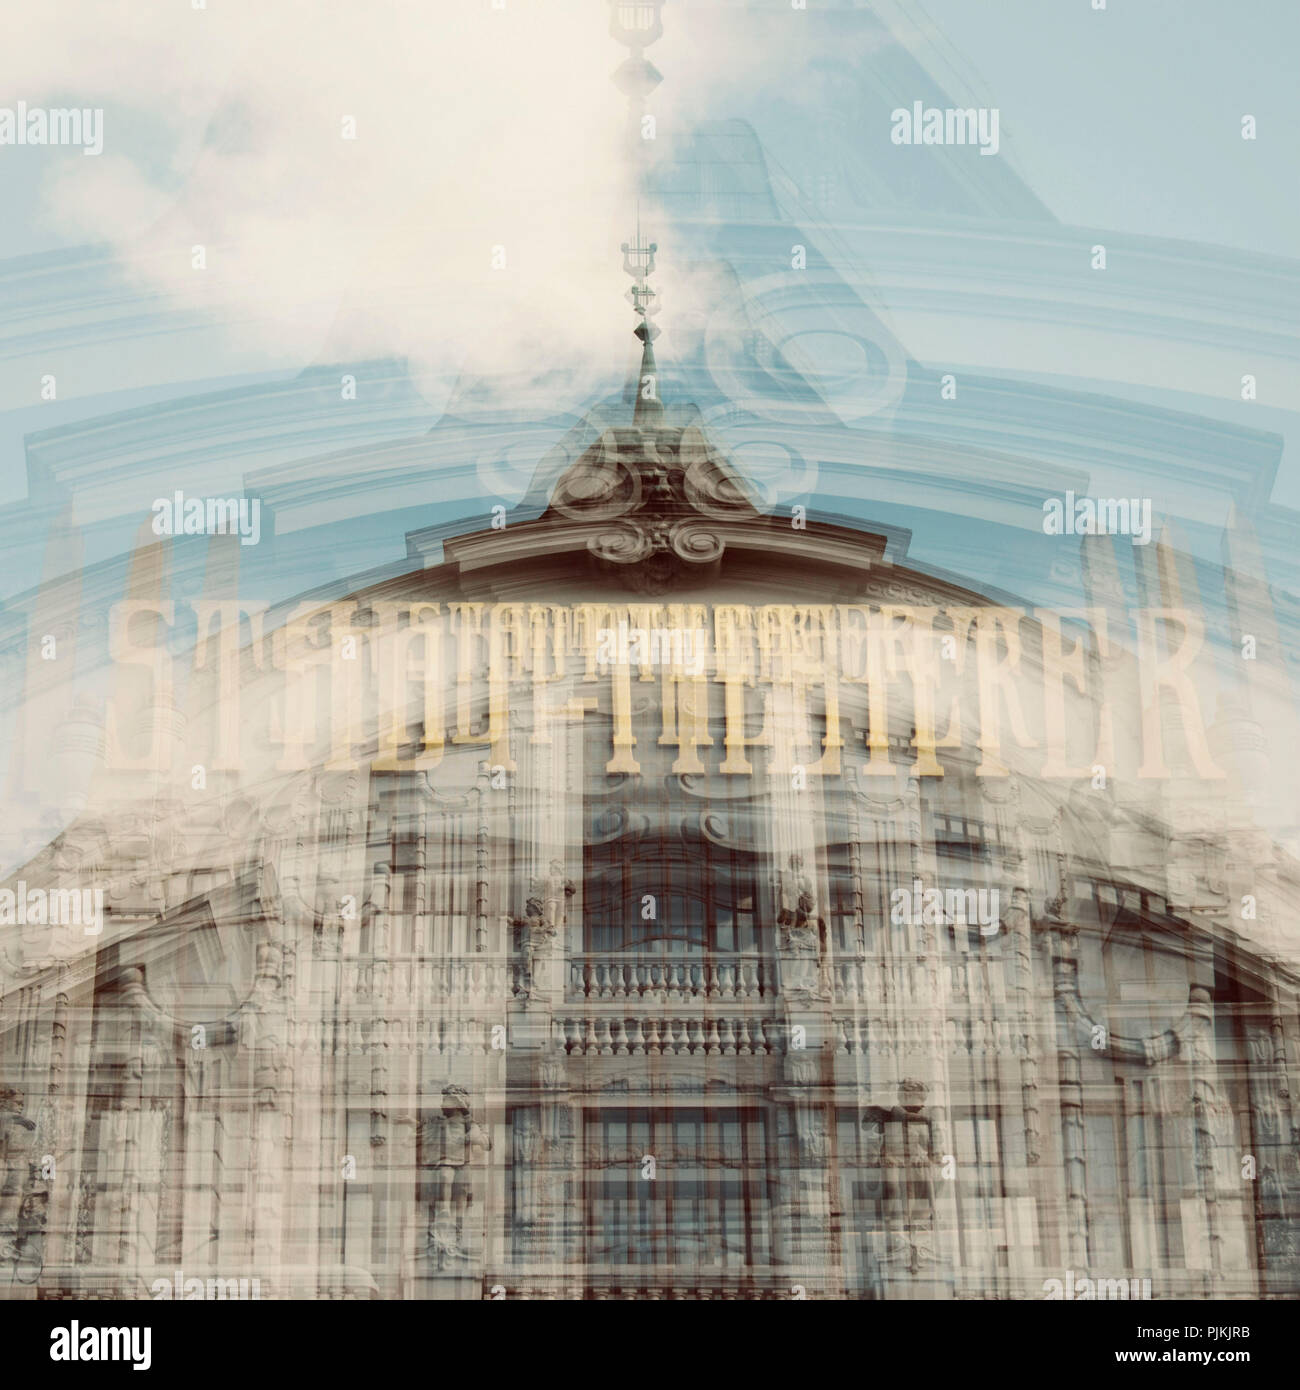 The Scity theater in Bielefeld, artistical photographed with the help of multiple exposure, - Stock Image